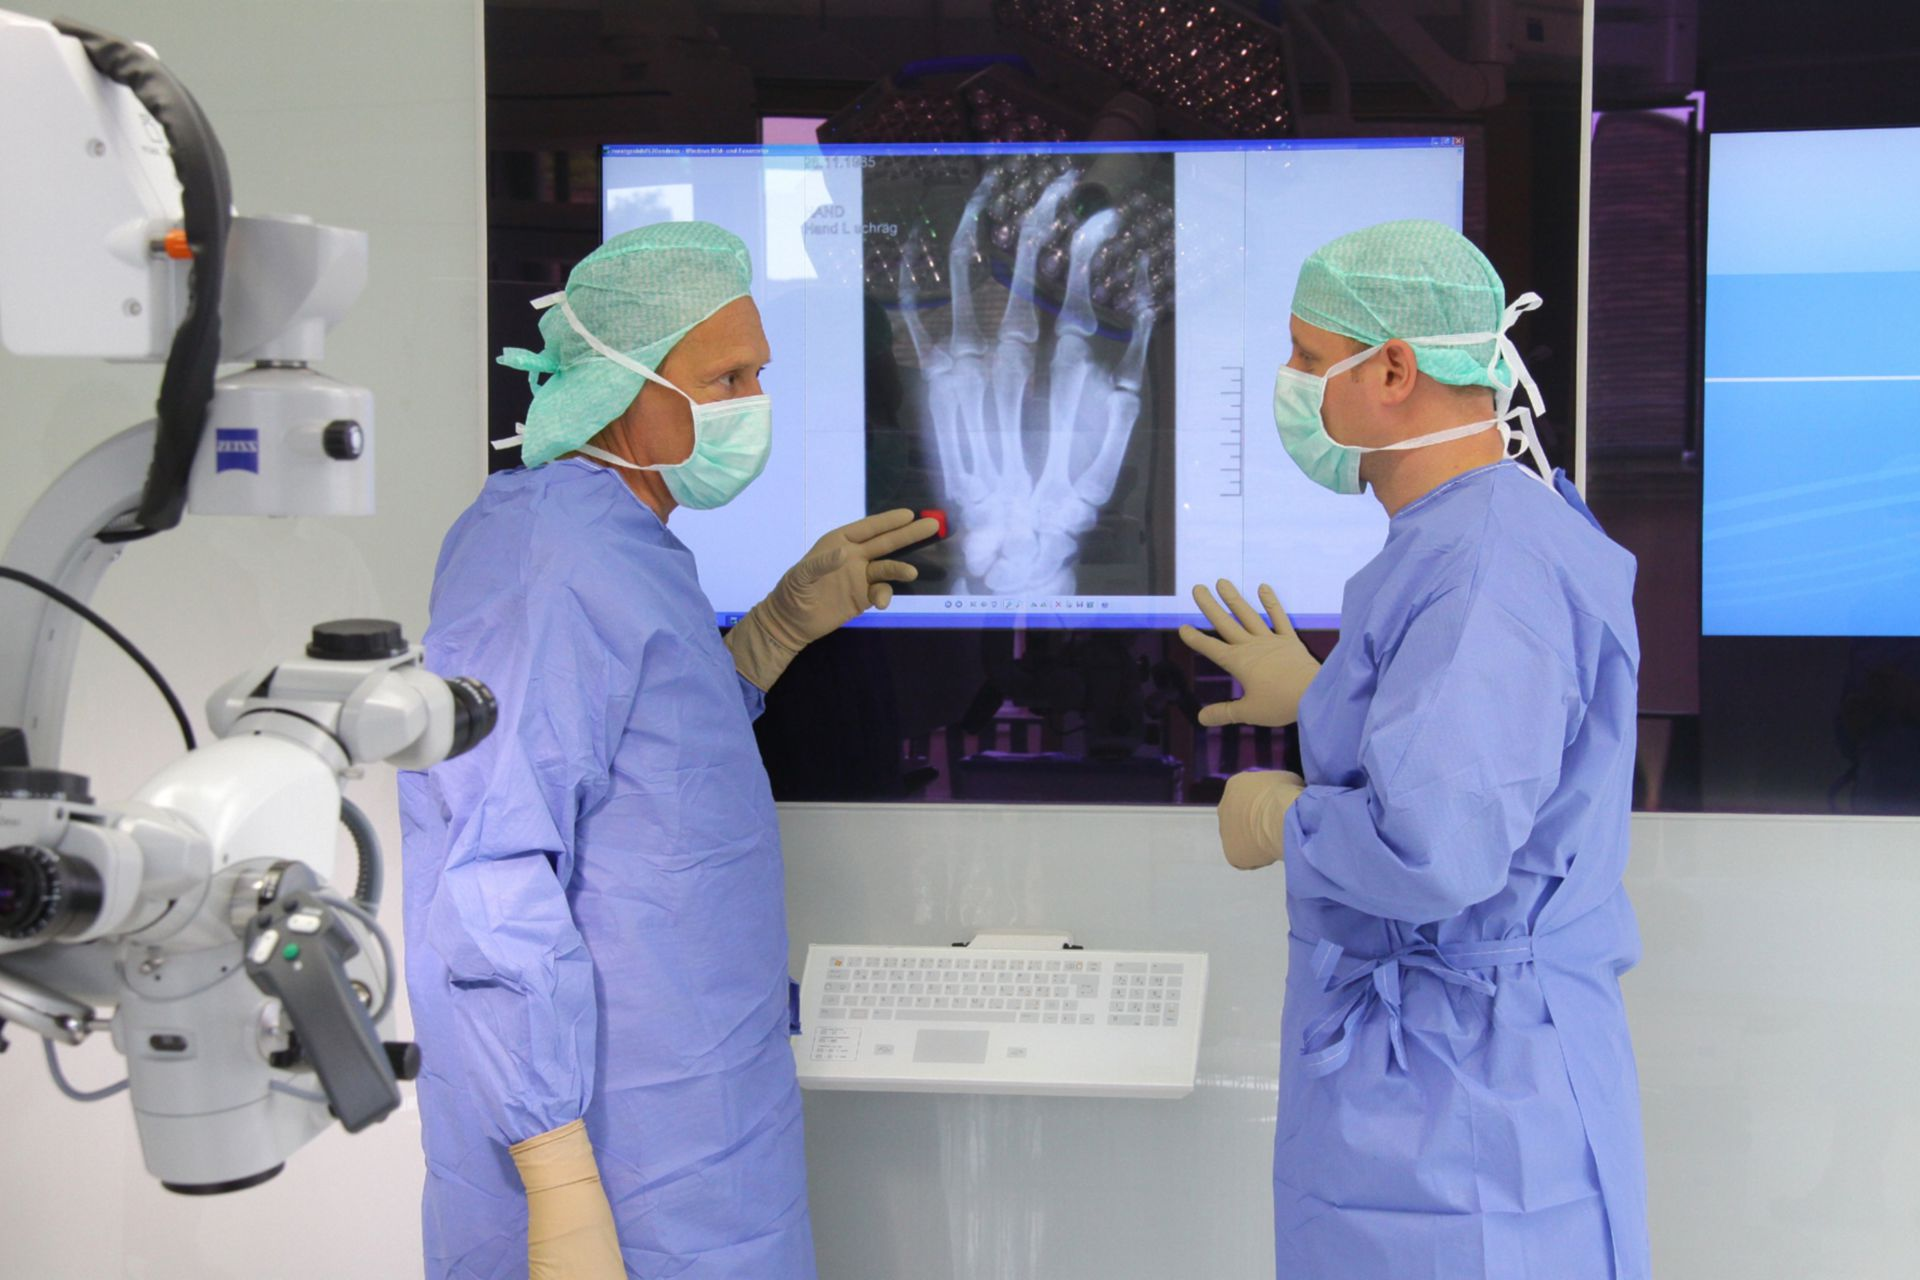 X-Ray discussion